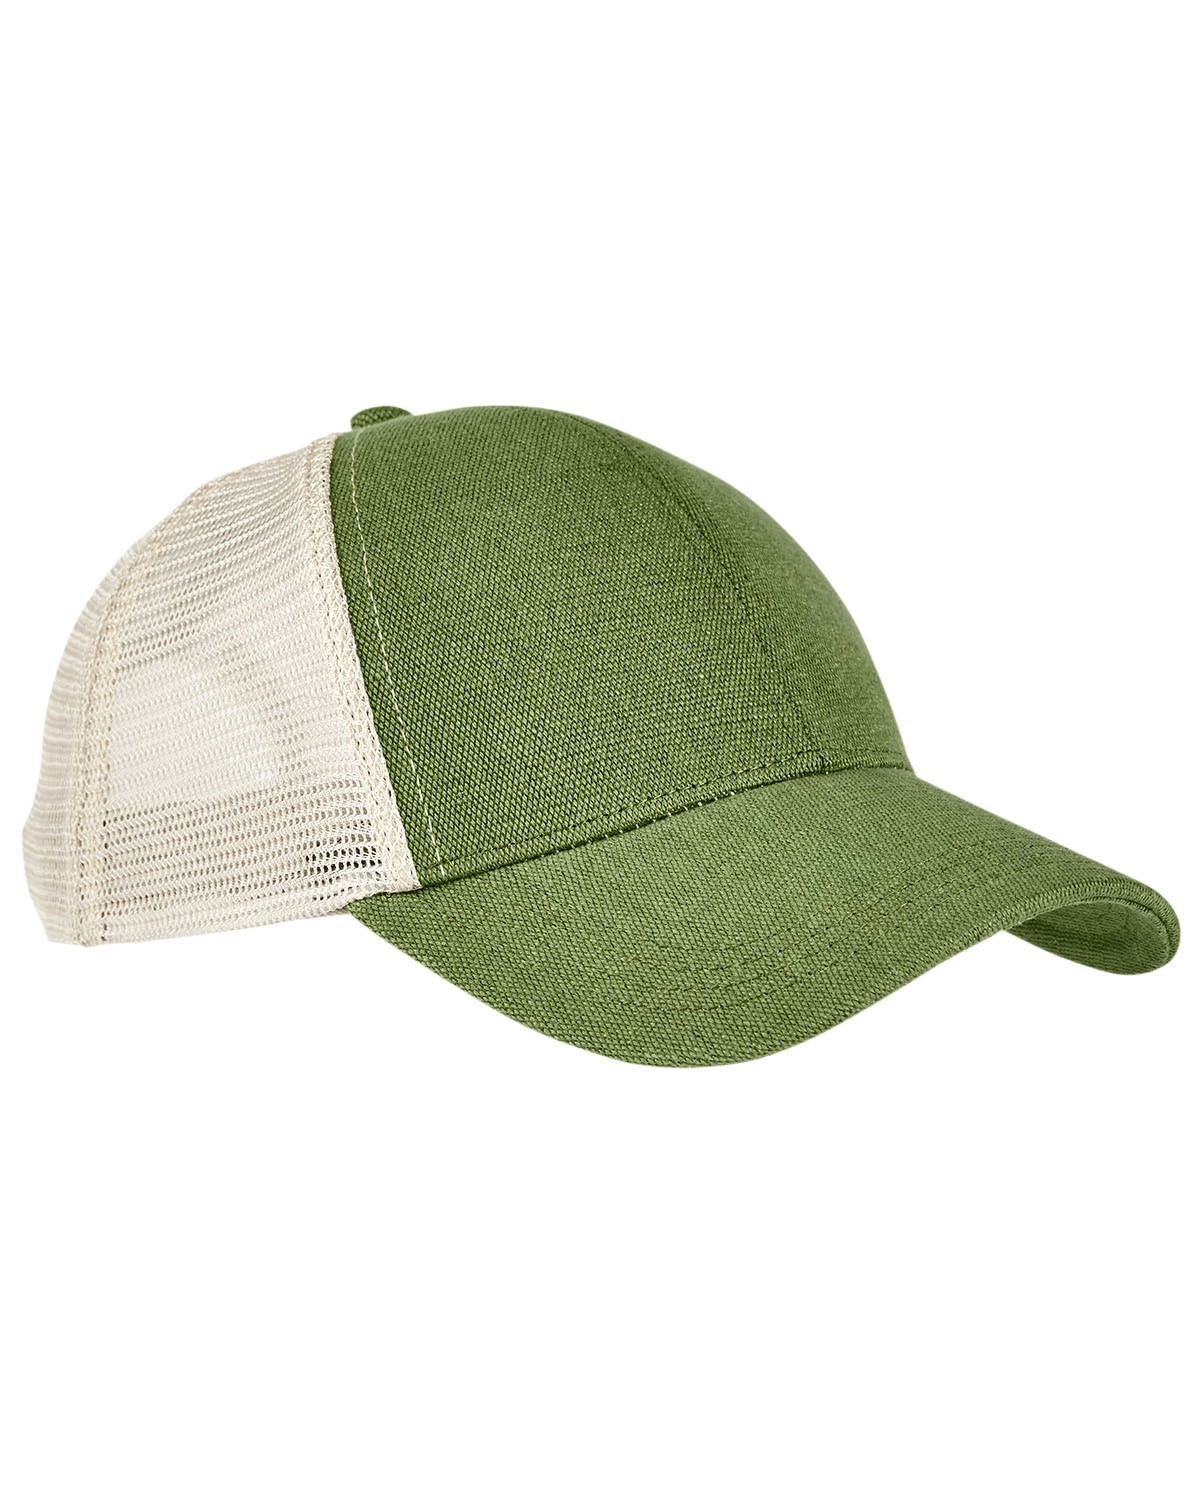 EC7093 Econscious OLIVE/ OYSTER